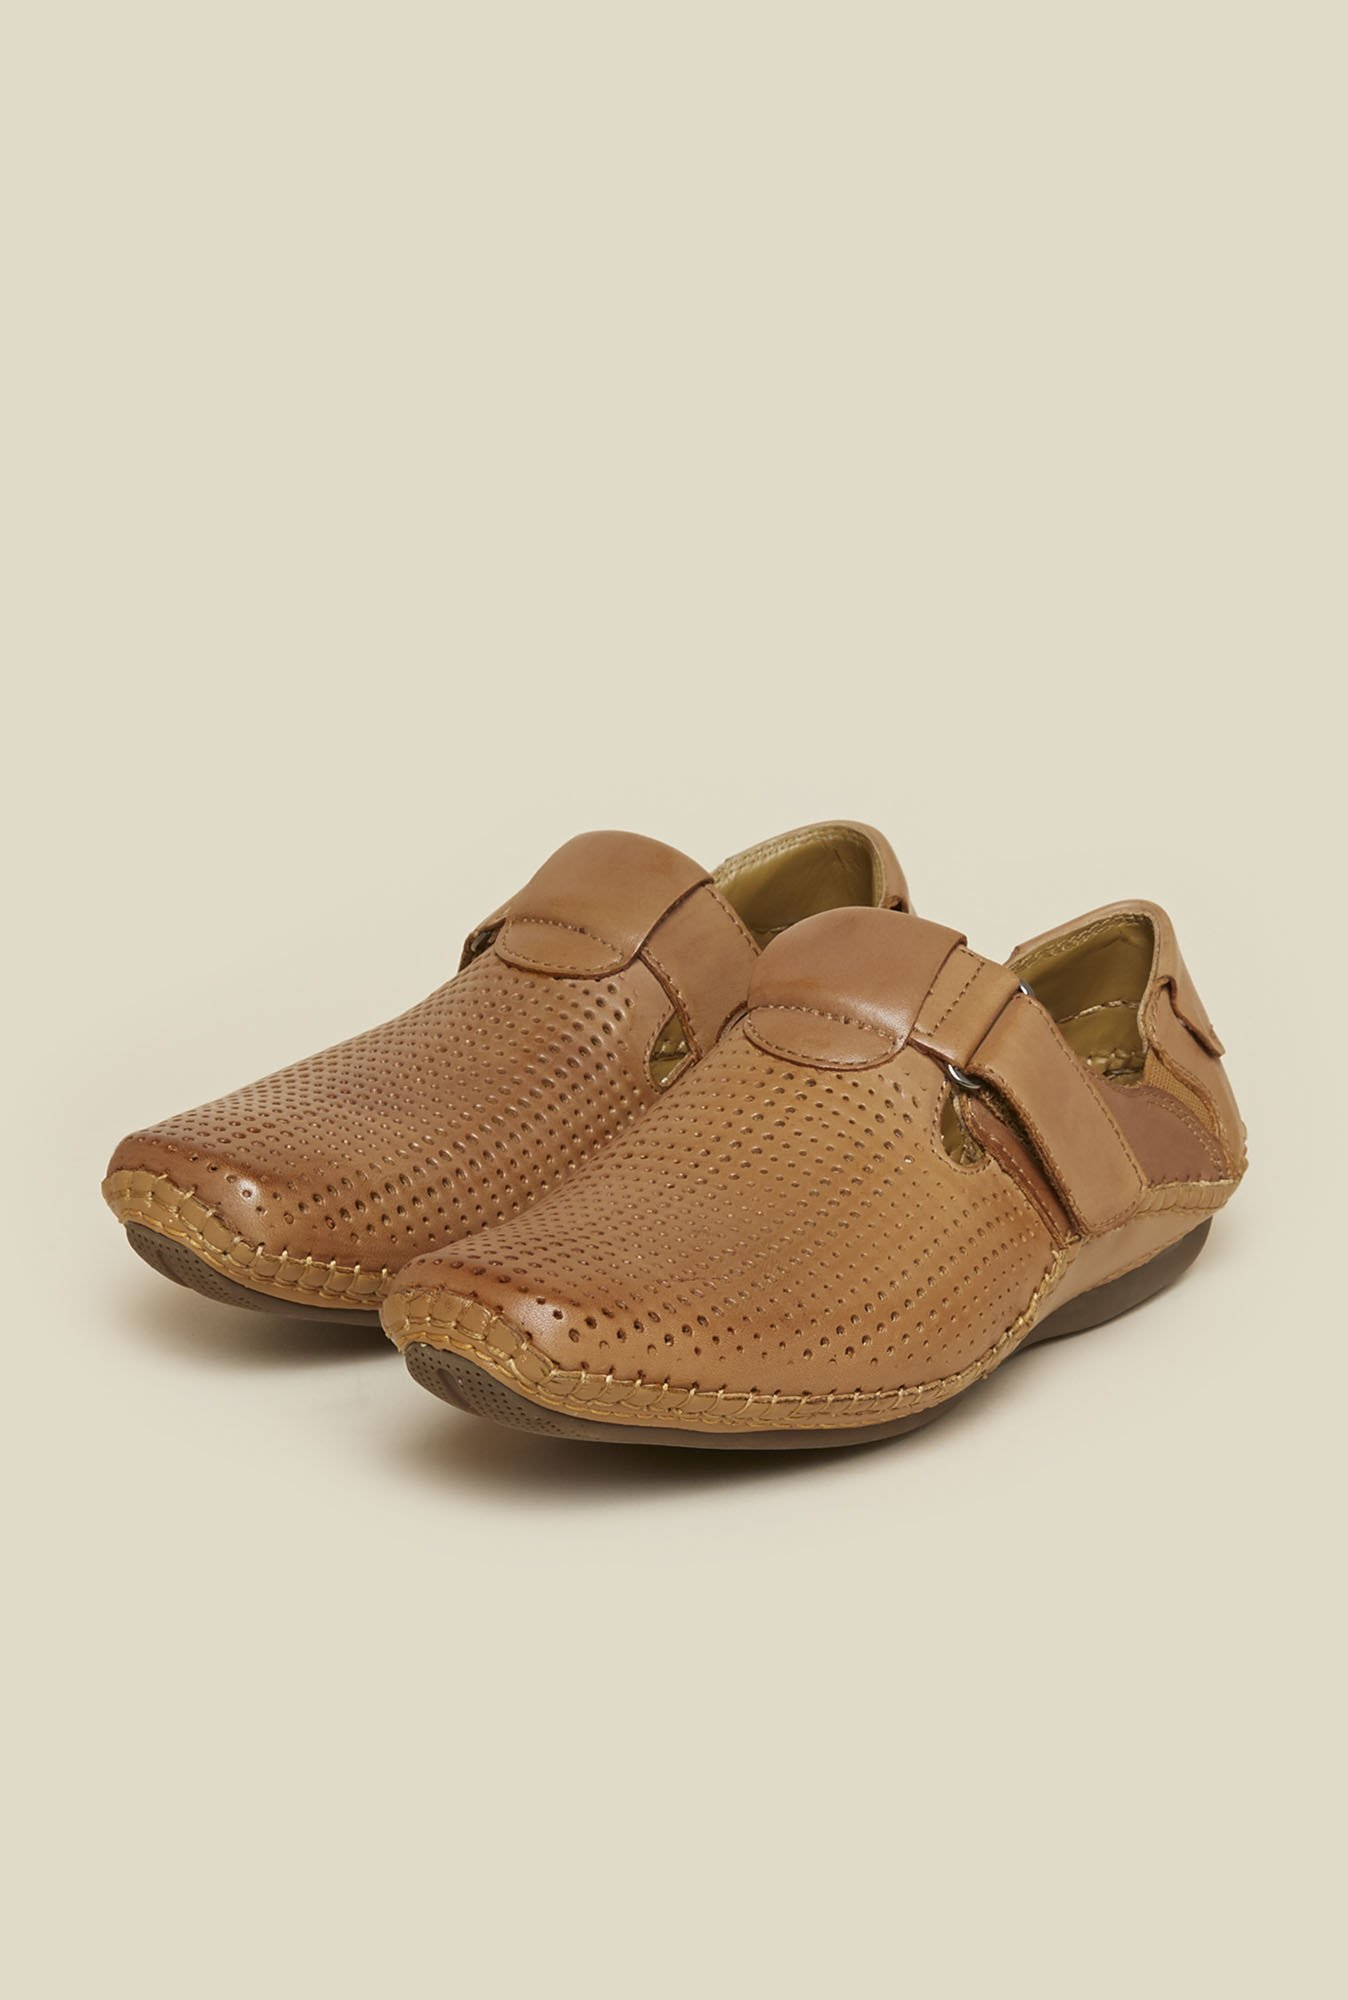 J. Fontini by Mochi Tan Leather Sandals